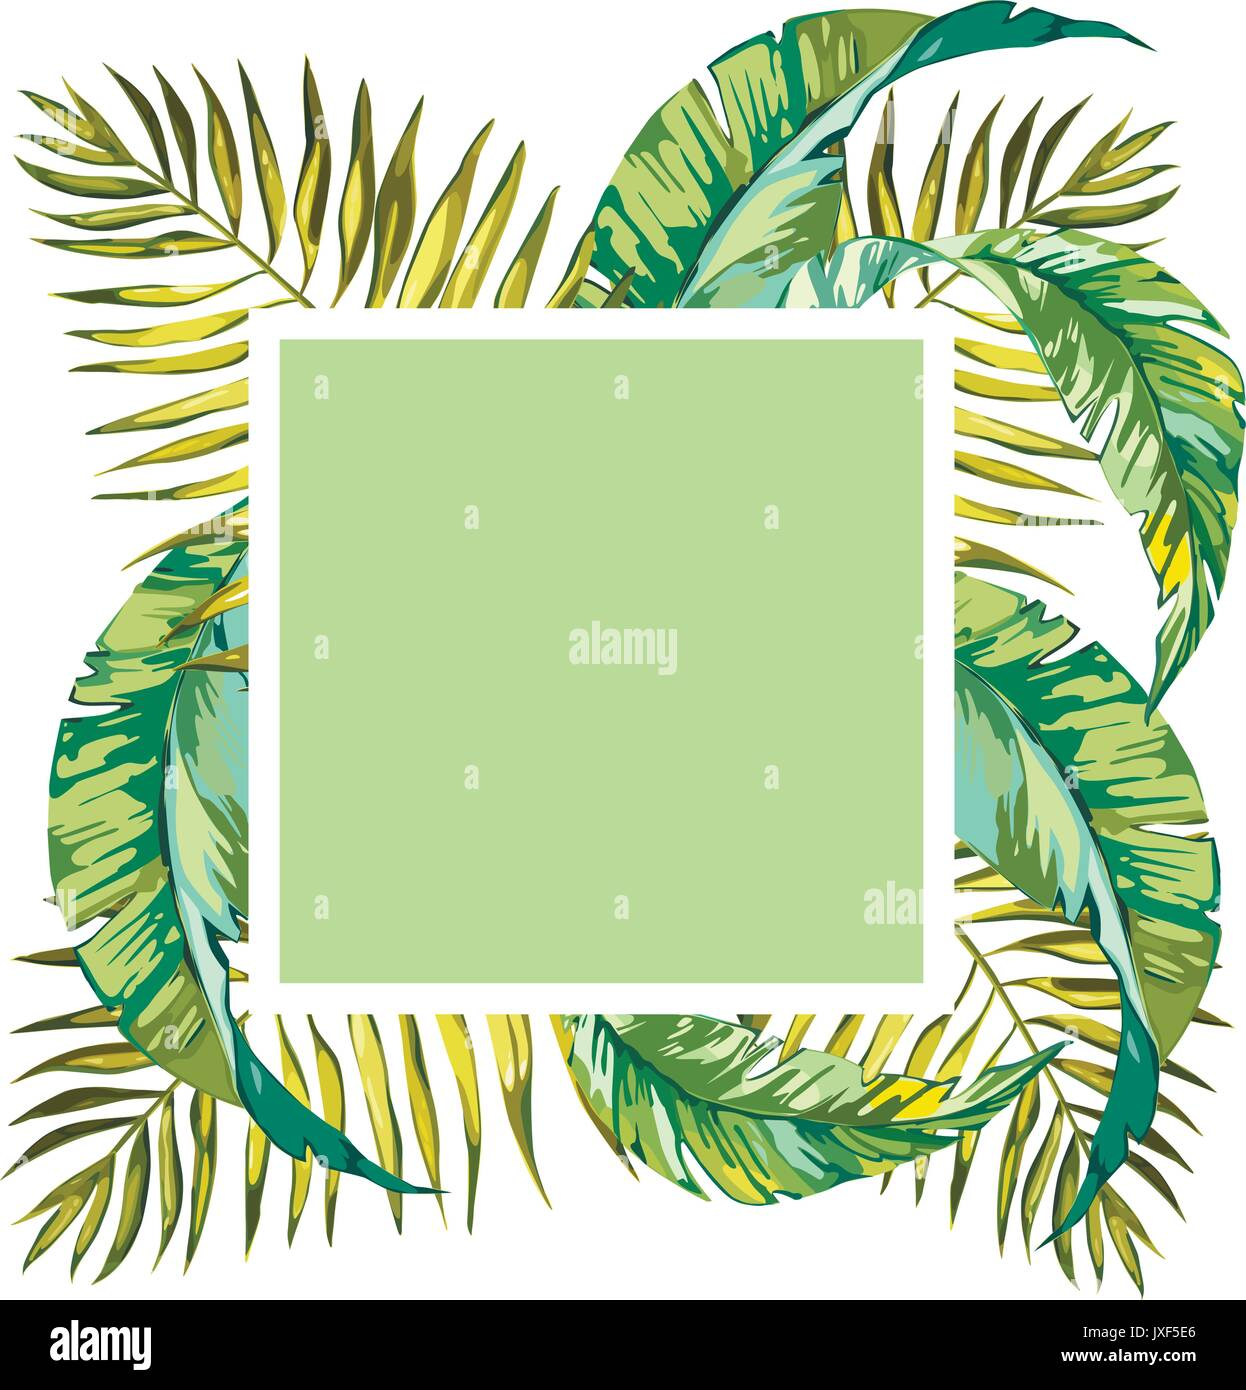 Summer Tropical Background With Palm Tree Leaves And Exotic Plants Stock Vector Image Art Alamy Pngtree offers hd tropical background images for free download. https www alamy com summer tropical background with palm tree leaves and exotic plants image153997598 html